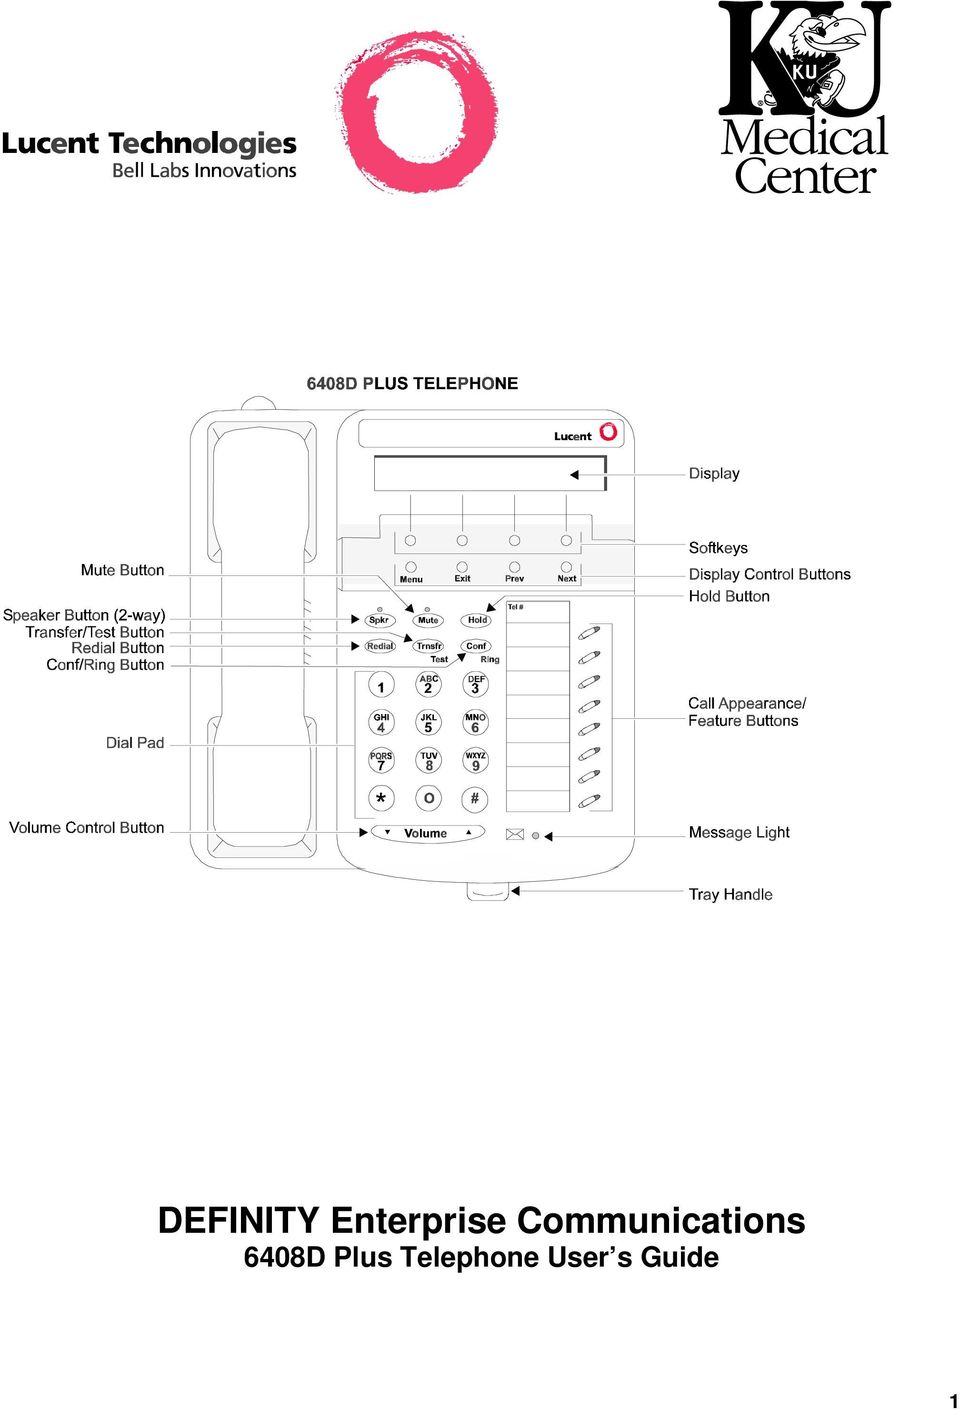 2 About Your Telephone The 6408D Plus Is A Multi Line With Conventional Touch Tone Dialing By 24 Character Display And Two Way